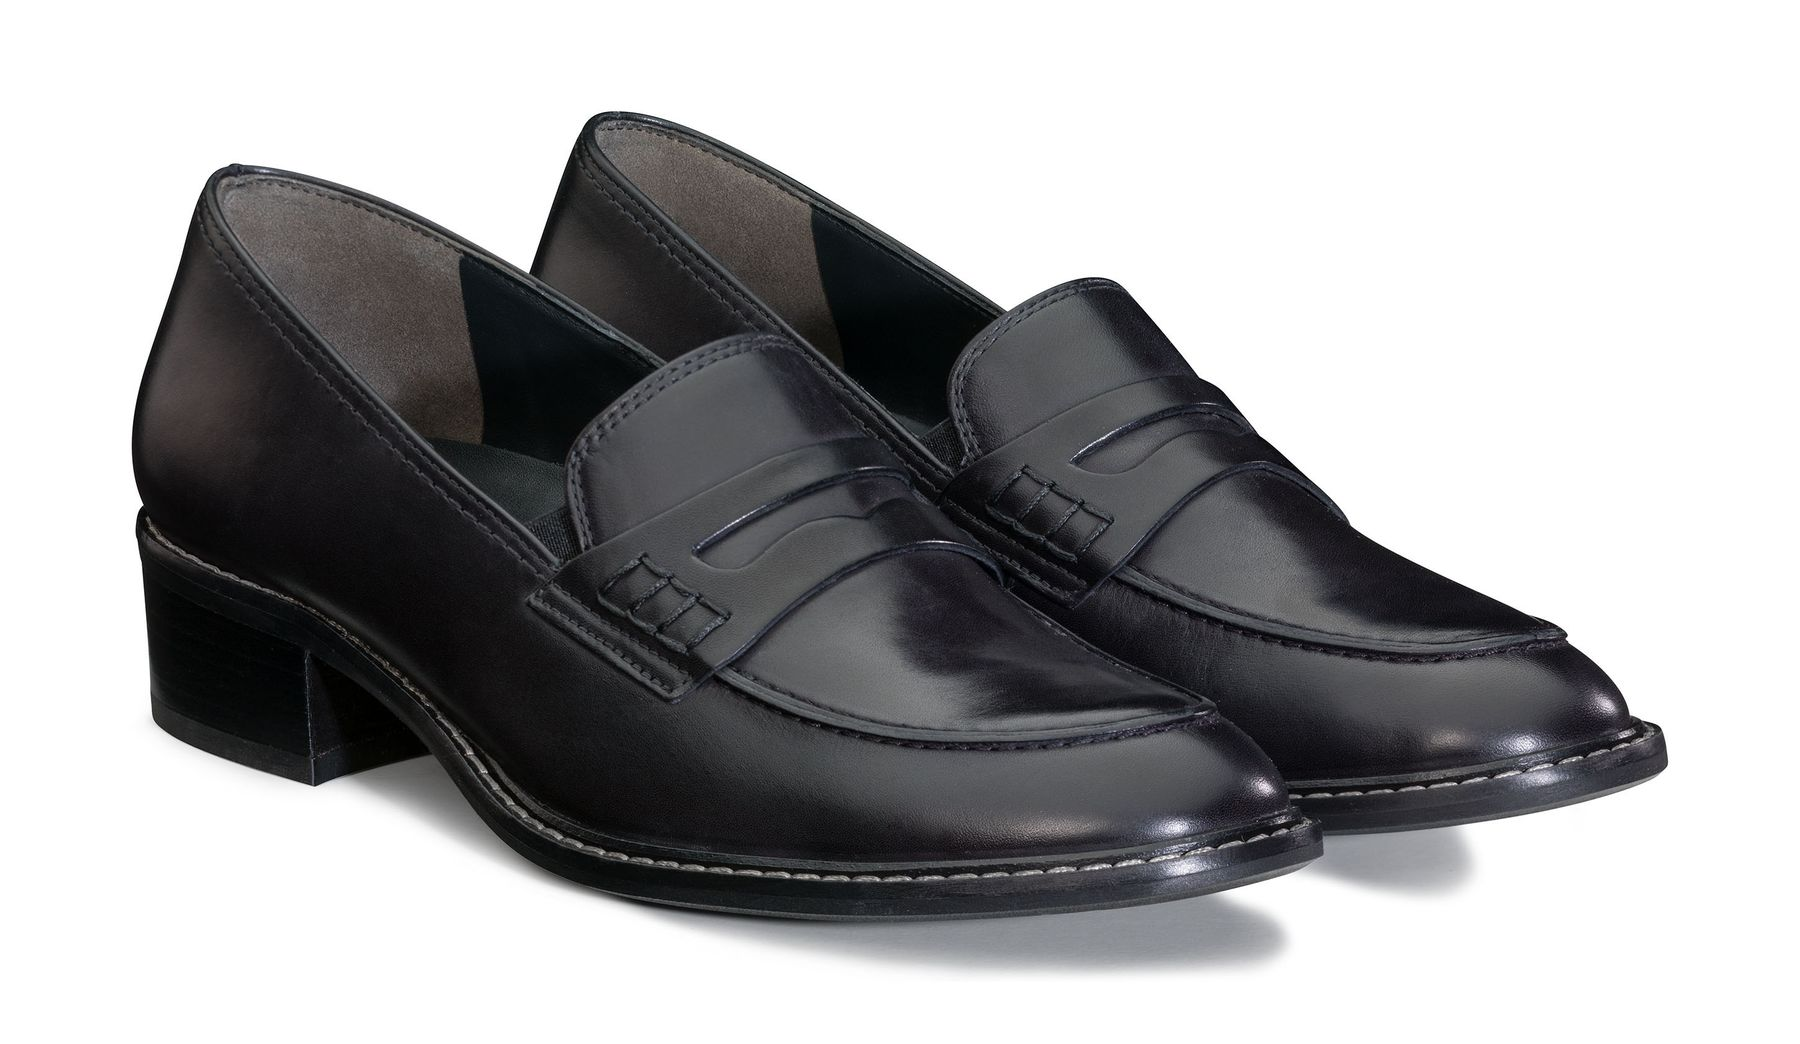 Damen-Loafer mit Lederrahmen in Schwarz - Paul Green